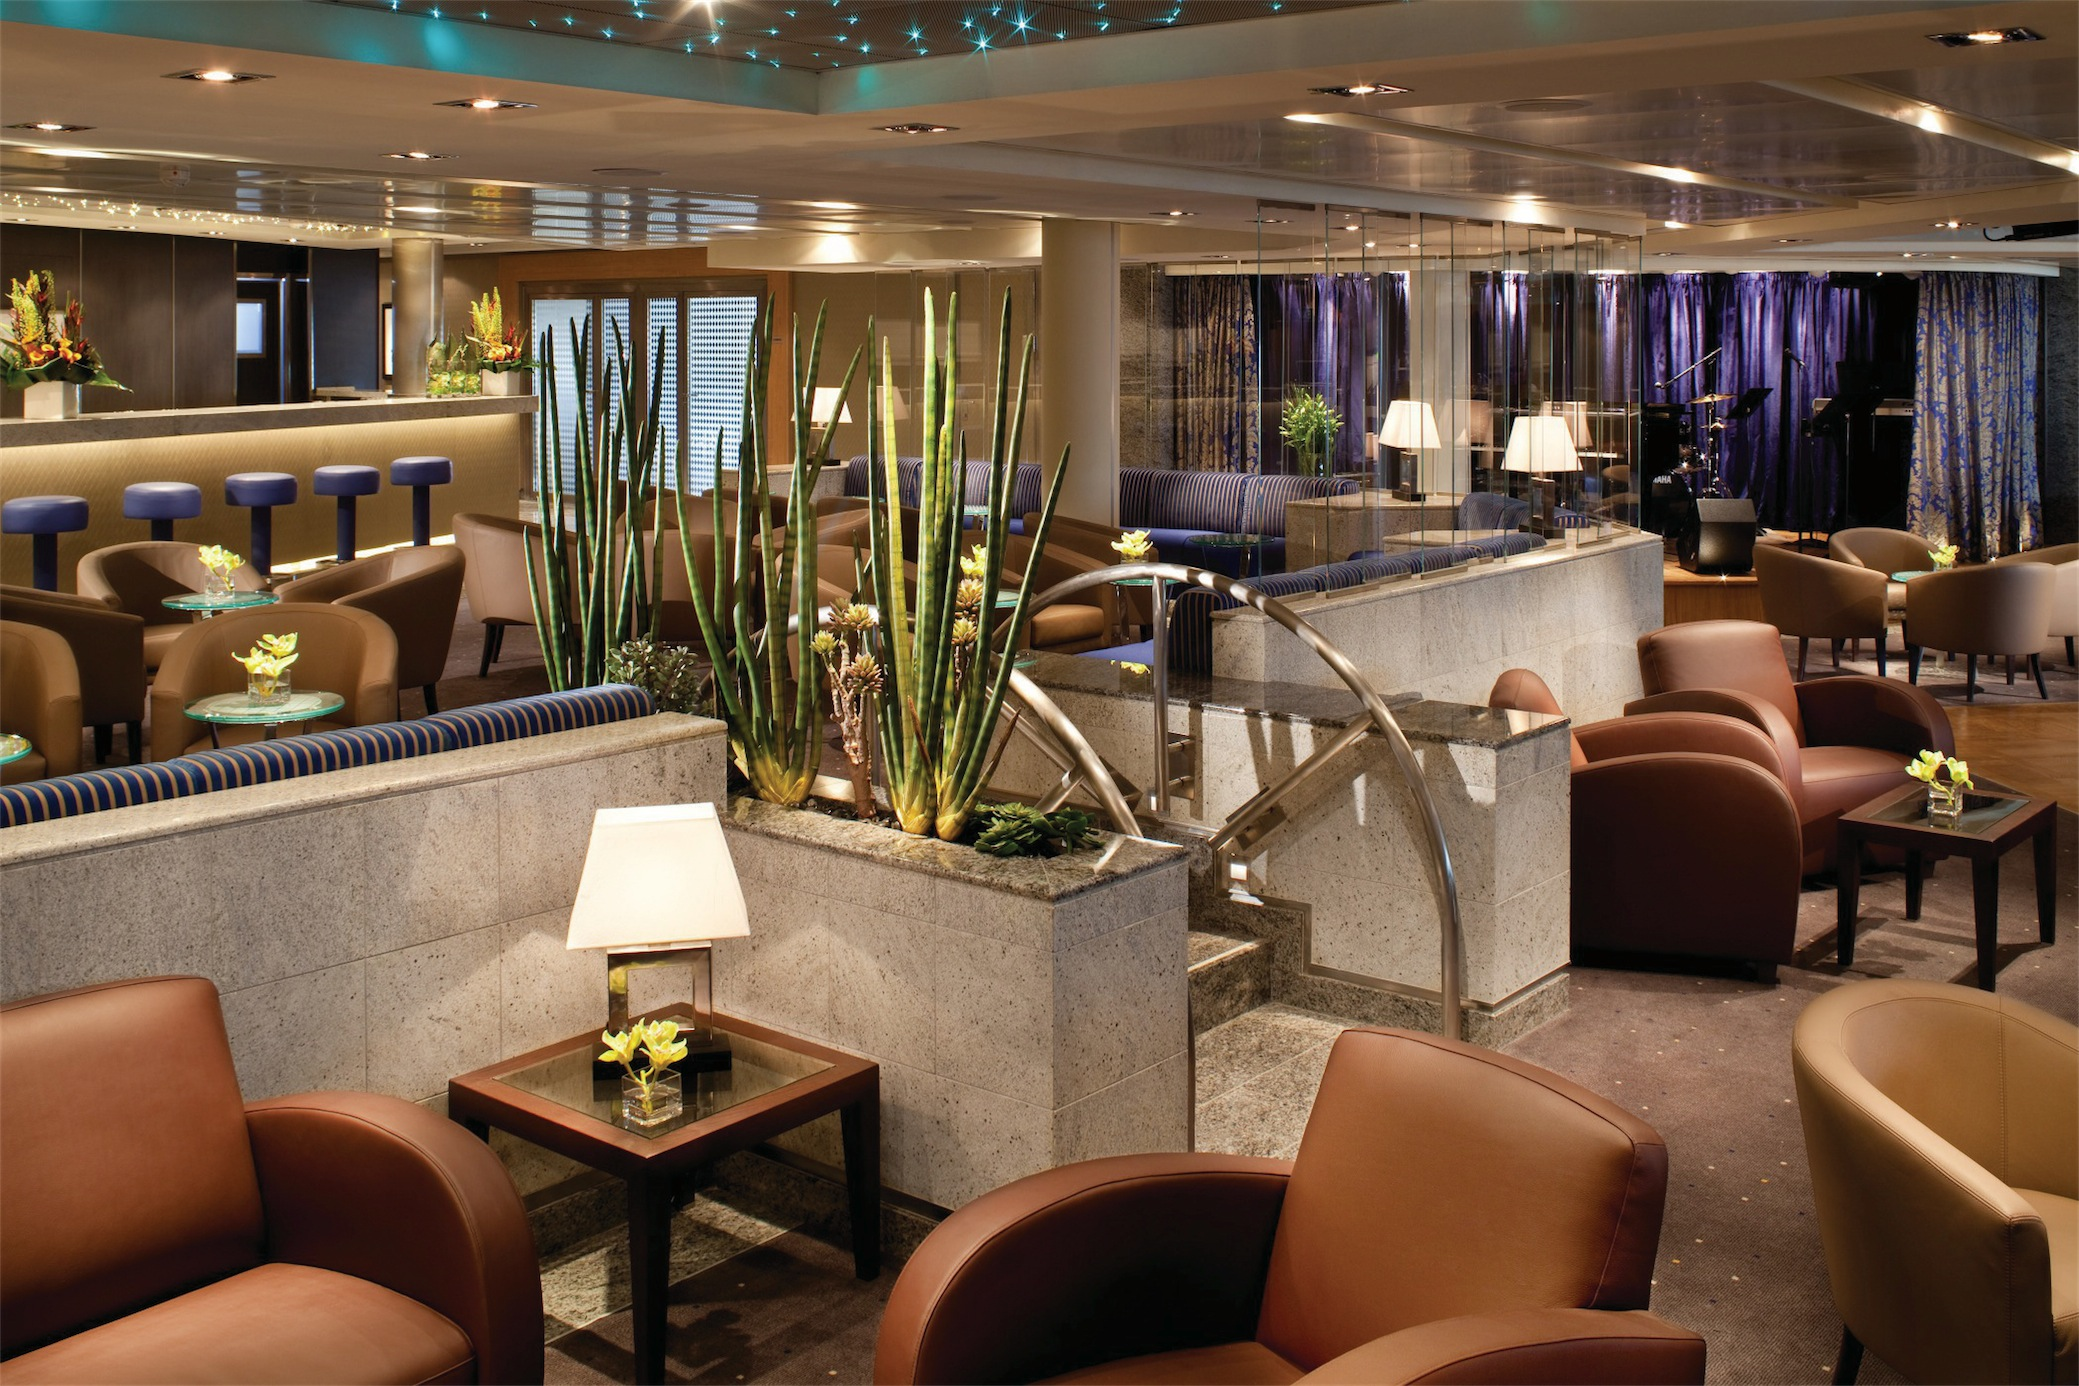 Seabourn Odyssey Class Interior The Club 2.jpg